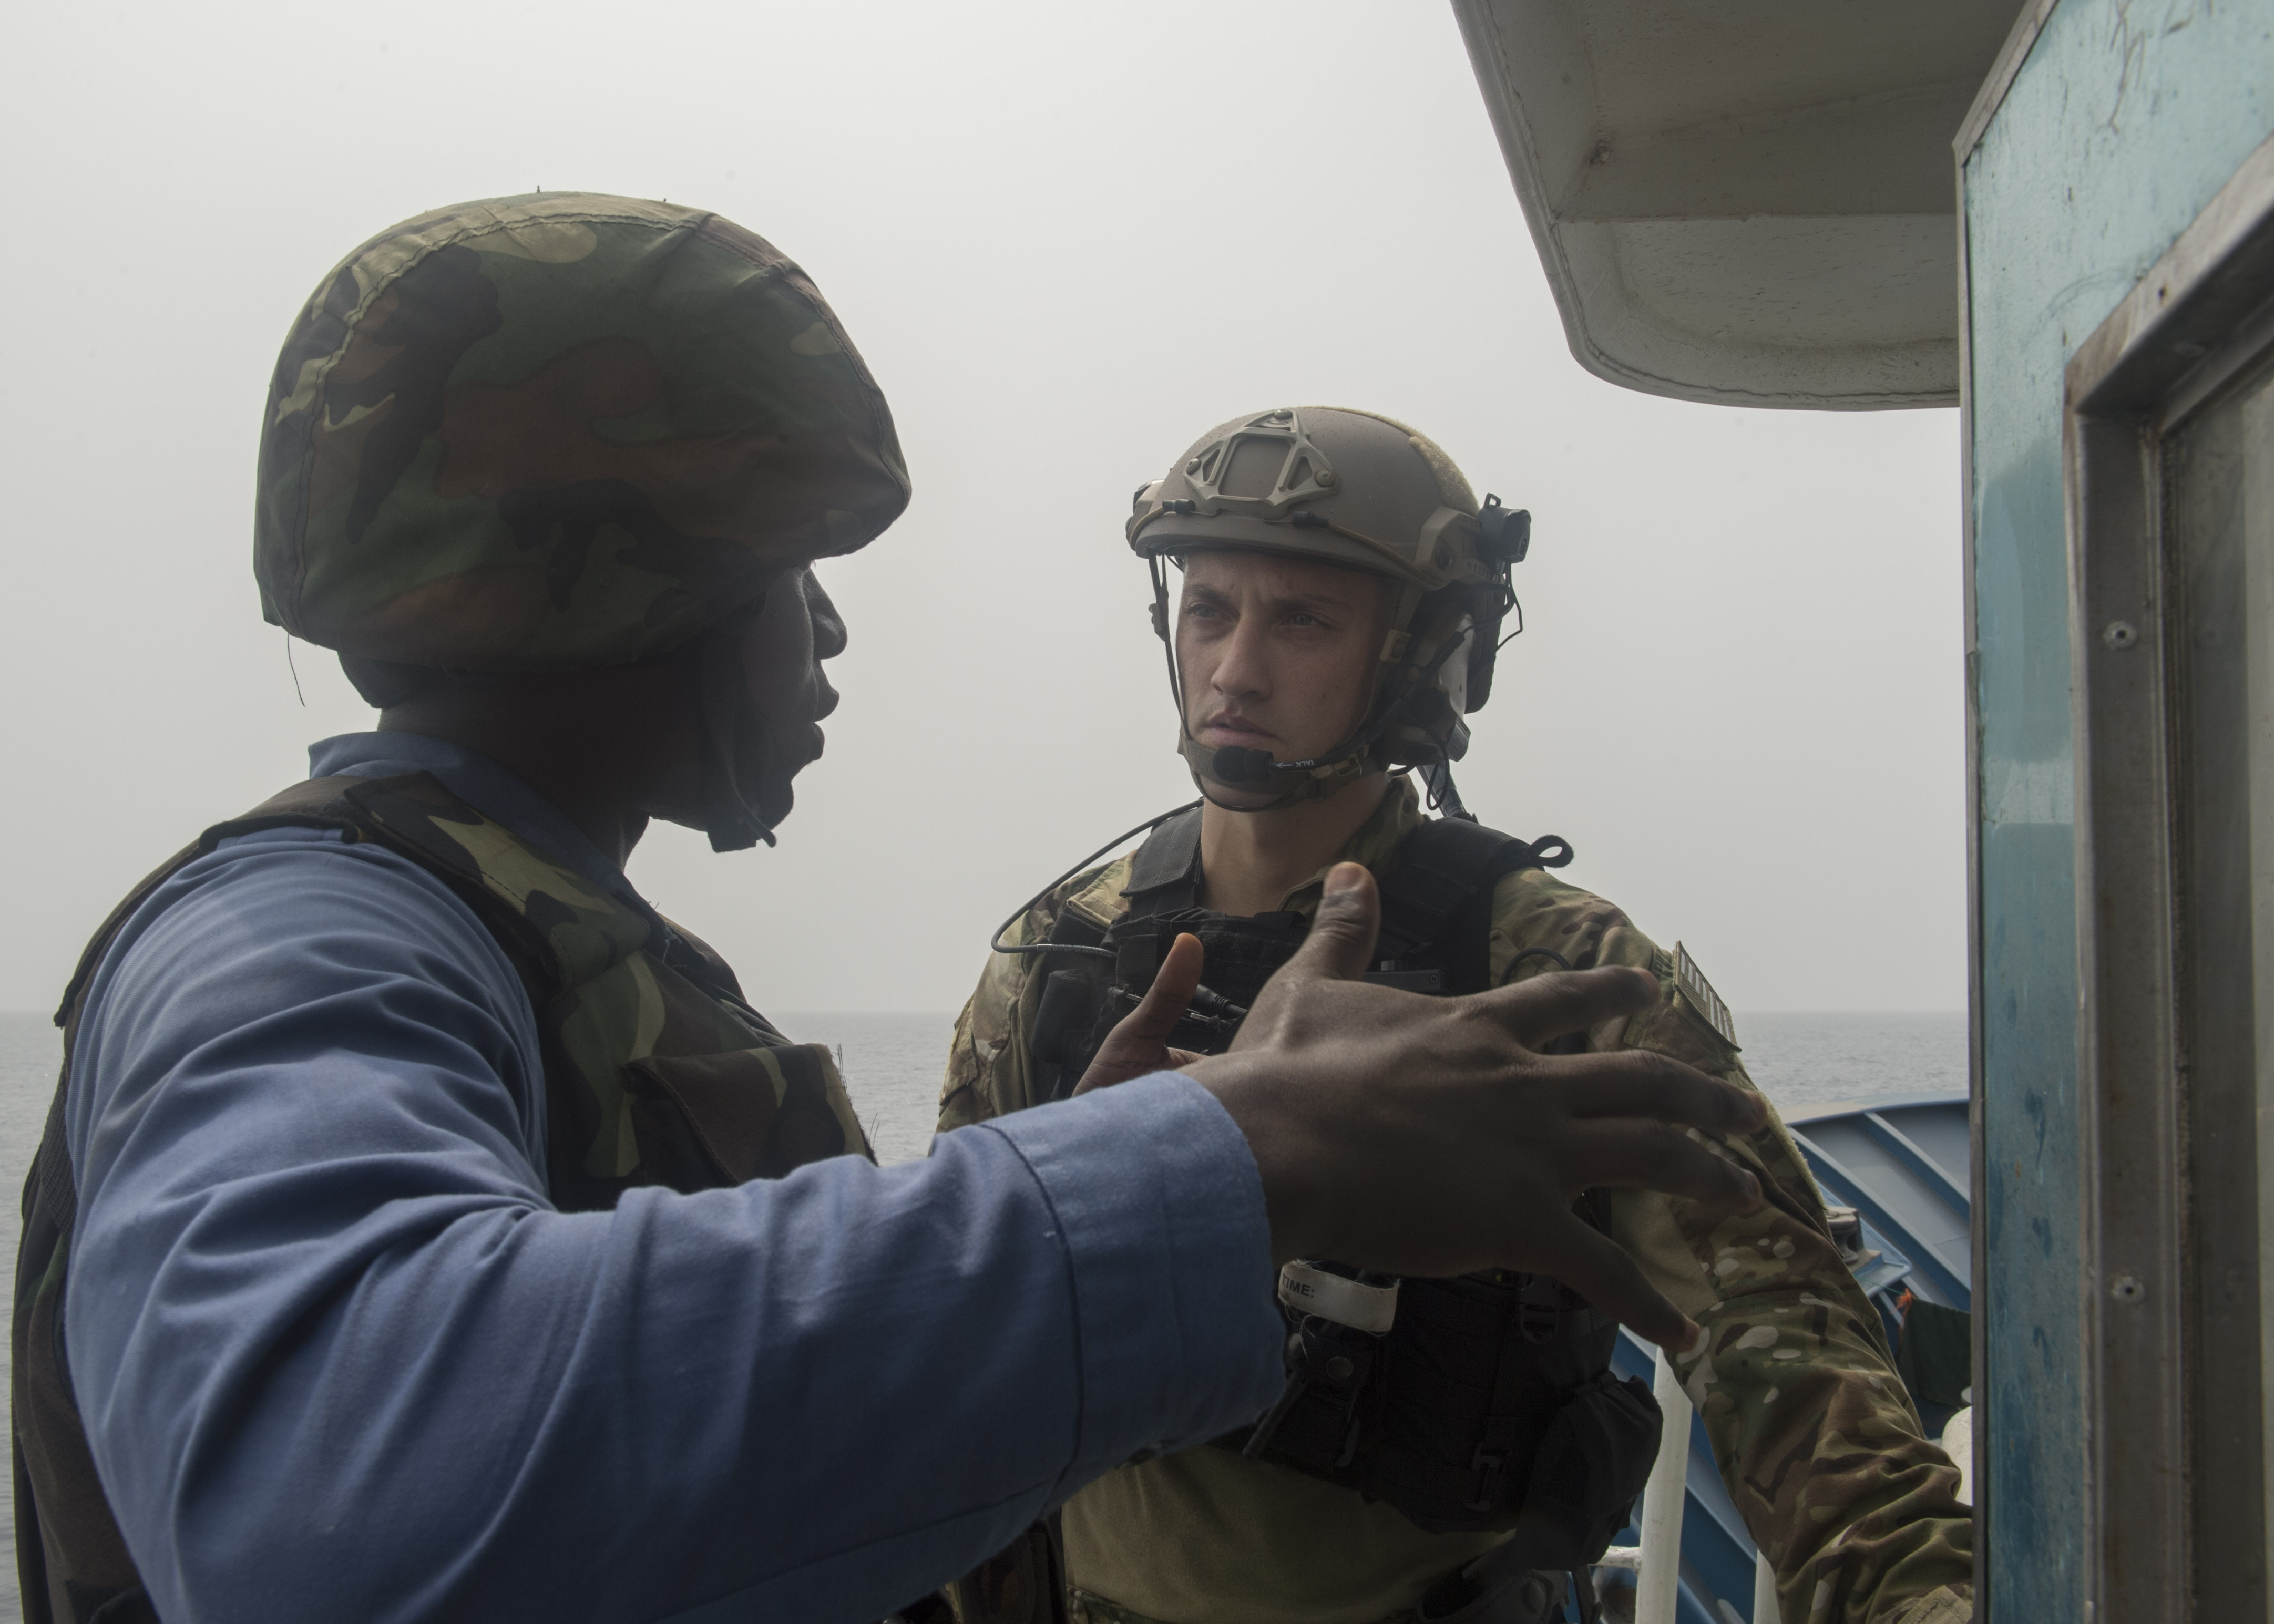 160204-N-WV703-025 ATLANTIC OCEAN (Feb. 04, 2016) A member of the Ghanaian Navy and a U.S. Coast Guard Tactical Law Enforcement Detachment member discuss boarding procedure while on a fishing vessel that was boarded during combined joint boarding operations Feb. 04, 2016. The Military Sealift Command expeditionary fast transport vessel USNS Spearhead (T-EPF 1) is on a scheduled deployment in the U.S. 6th Fleet area of operations to support the international collaborative capacity-building program Africa Partnership Station. (U.S. Navy photo by Mass Communication Specialist 3rd Class Amy M. Ressler/Released)